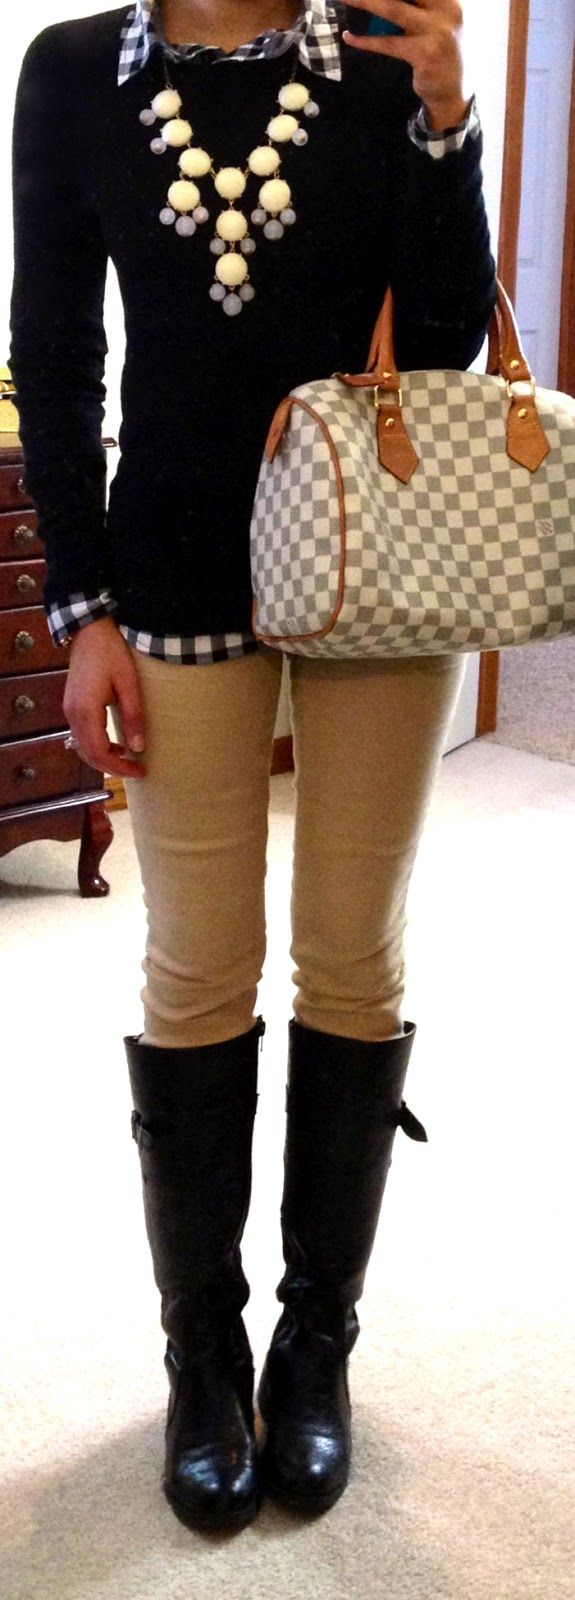 Check out this girl's blog ... she posts her work outfits and links where to get them.